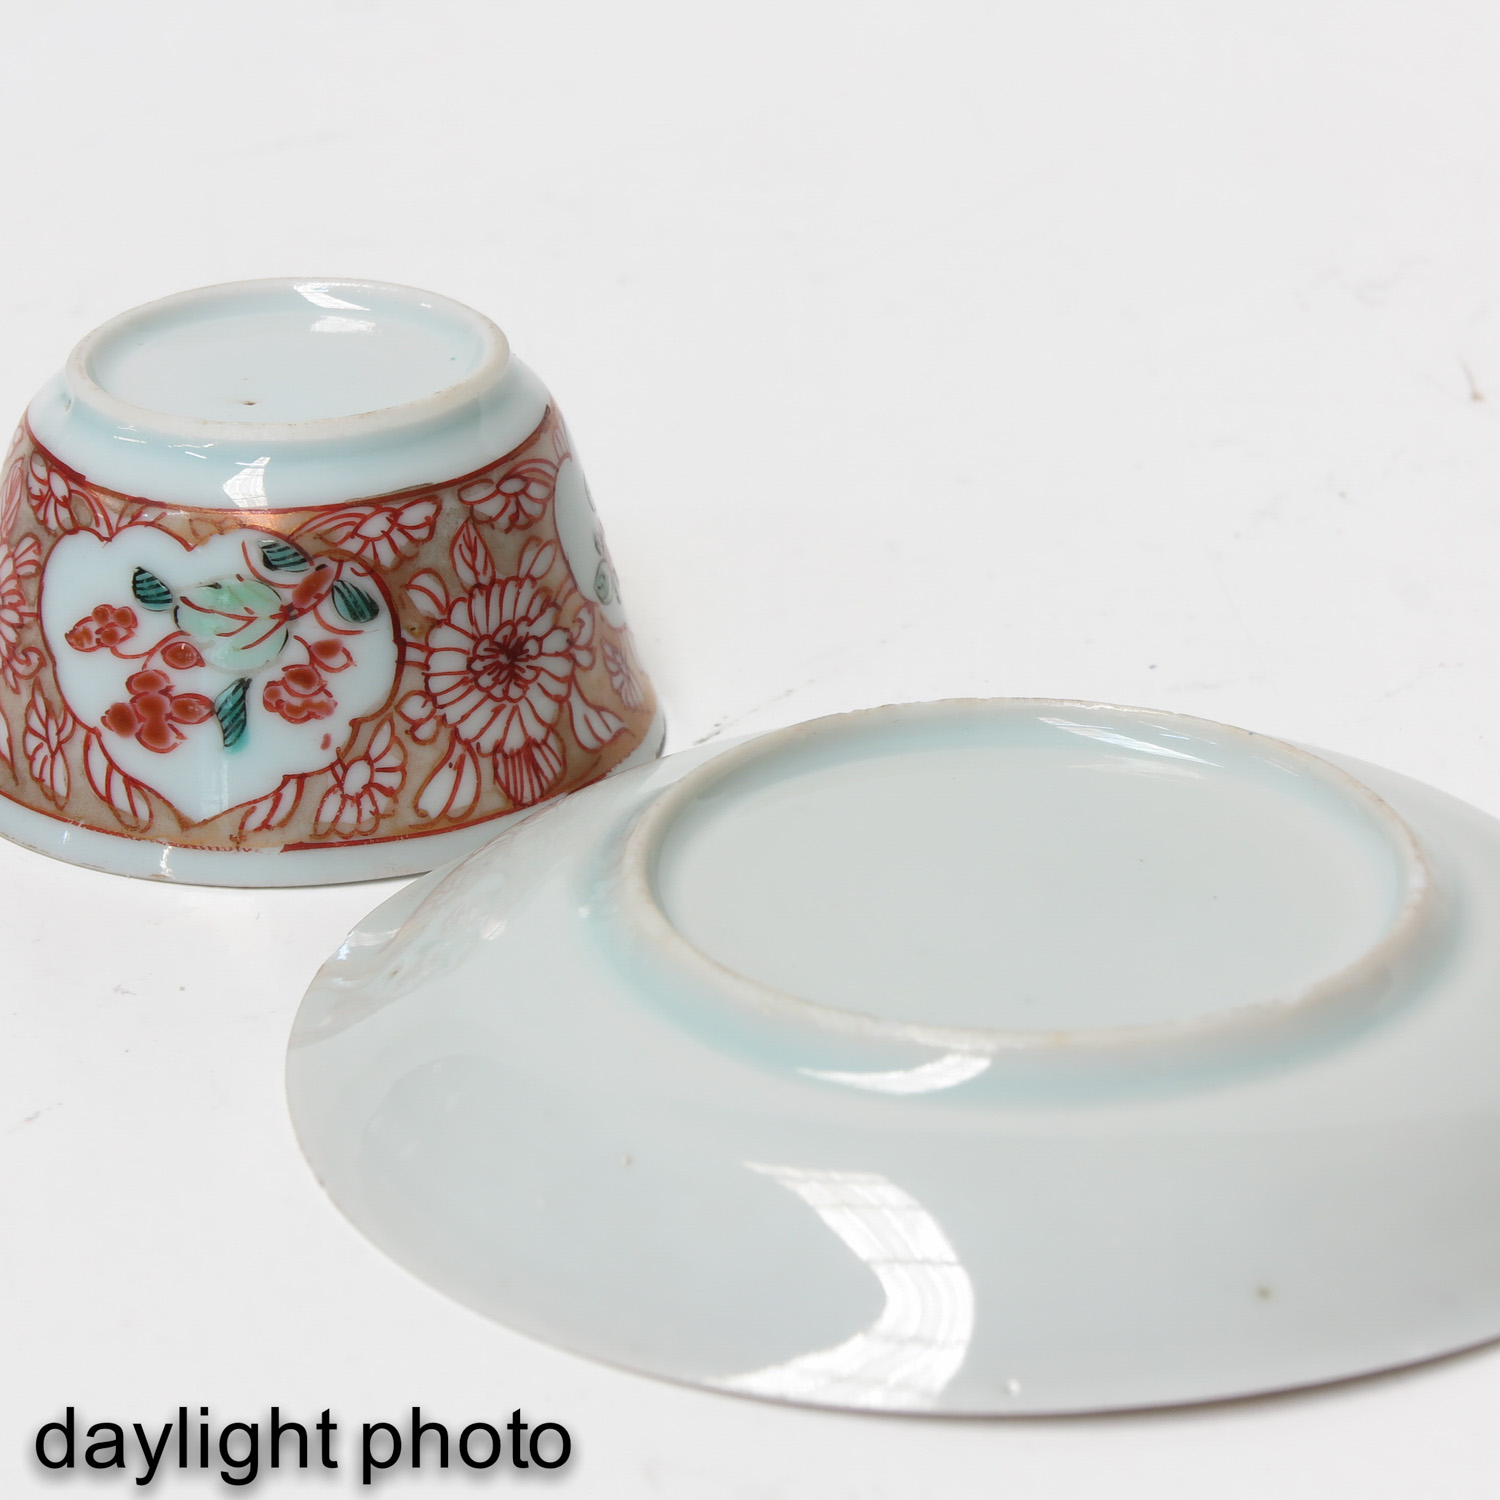 A Set of 2 Cups and Saucers - Image 10 of 10